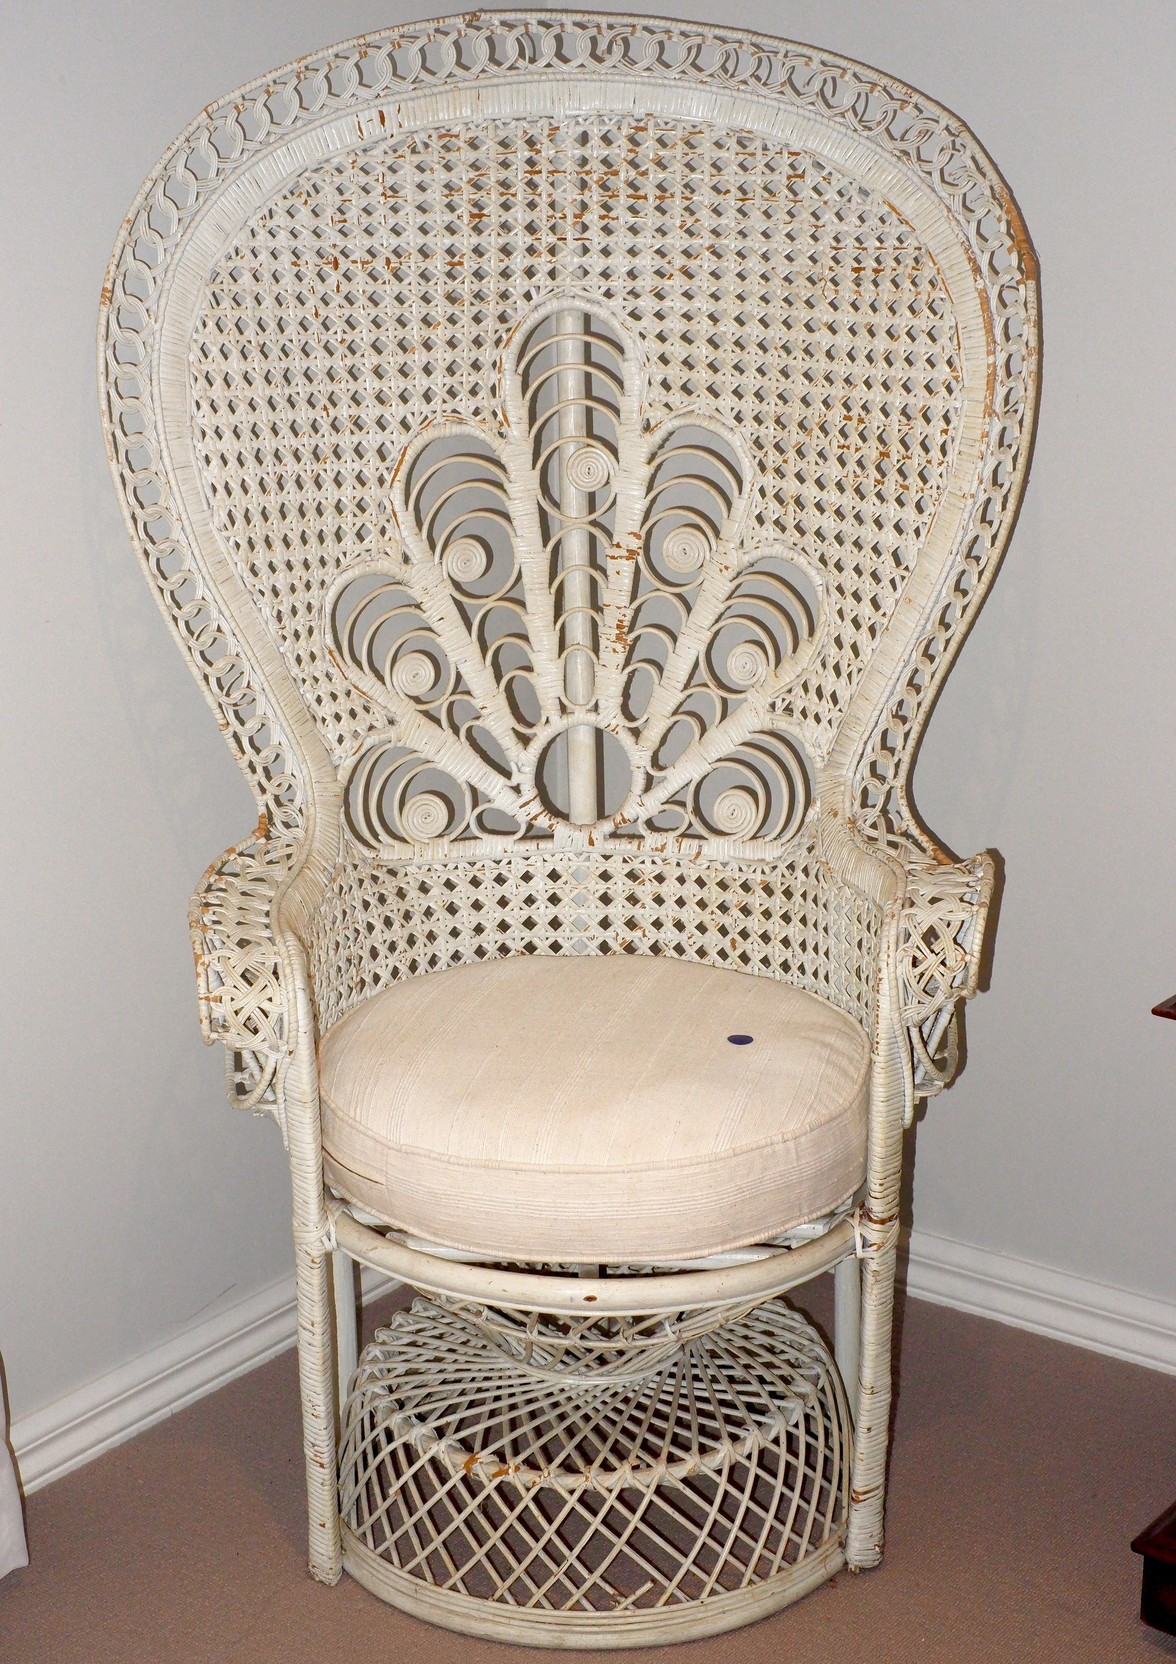 'Vintage Woven Cane Peacock Chair'